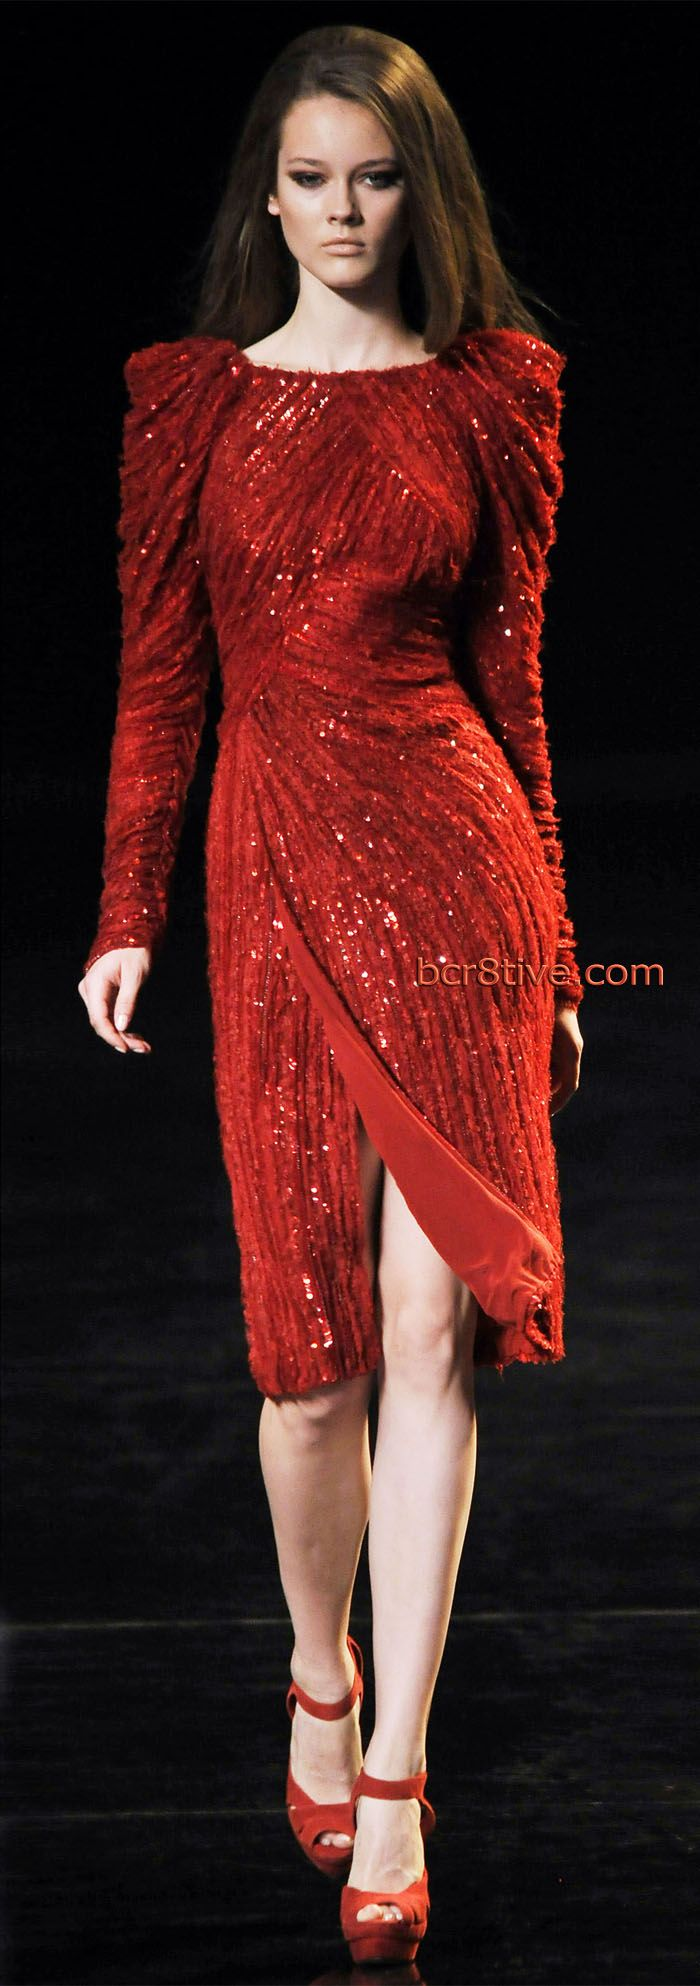 11 best images about red red and more red on pinterest for Haute couture red